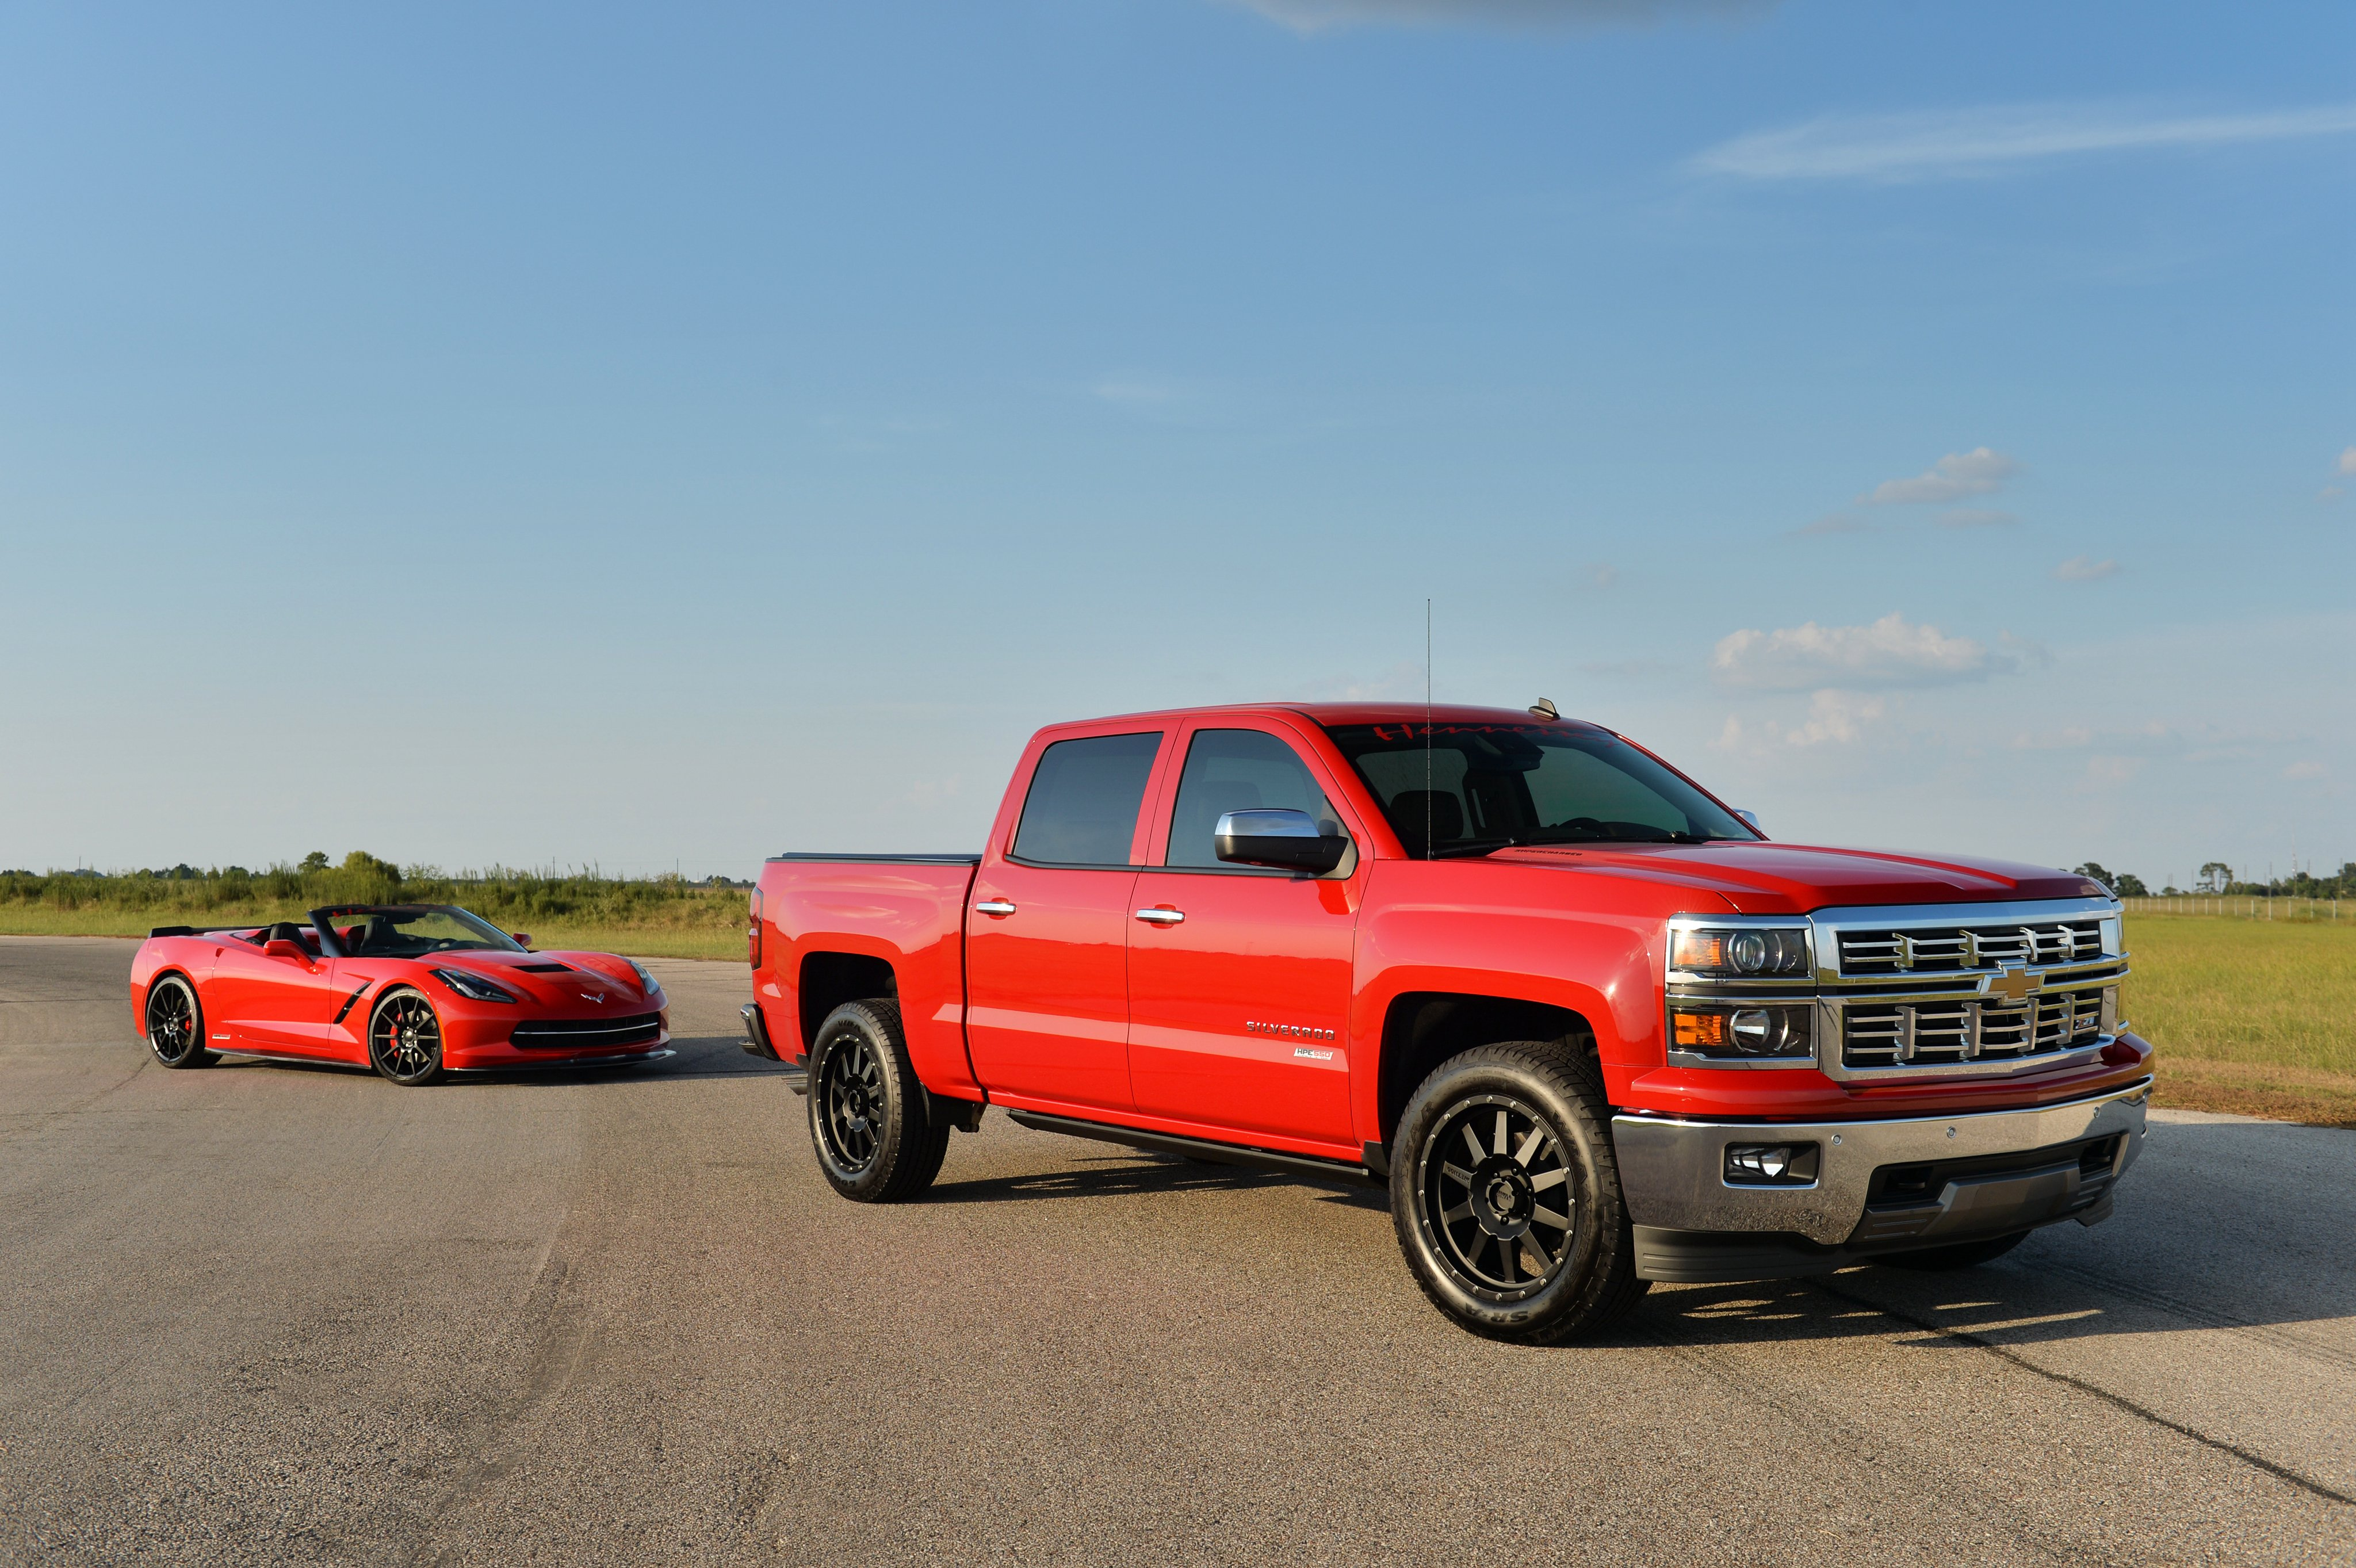 2015 hennessey chevrolet silverado hpe550 pickup muscle corvette supercar wallpaper 4096x2726 461871 wallpaperup